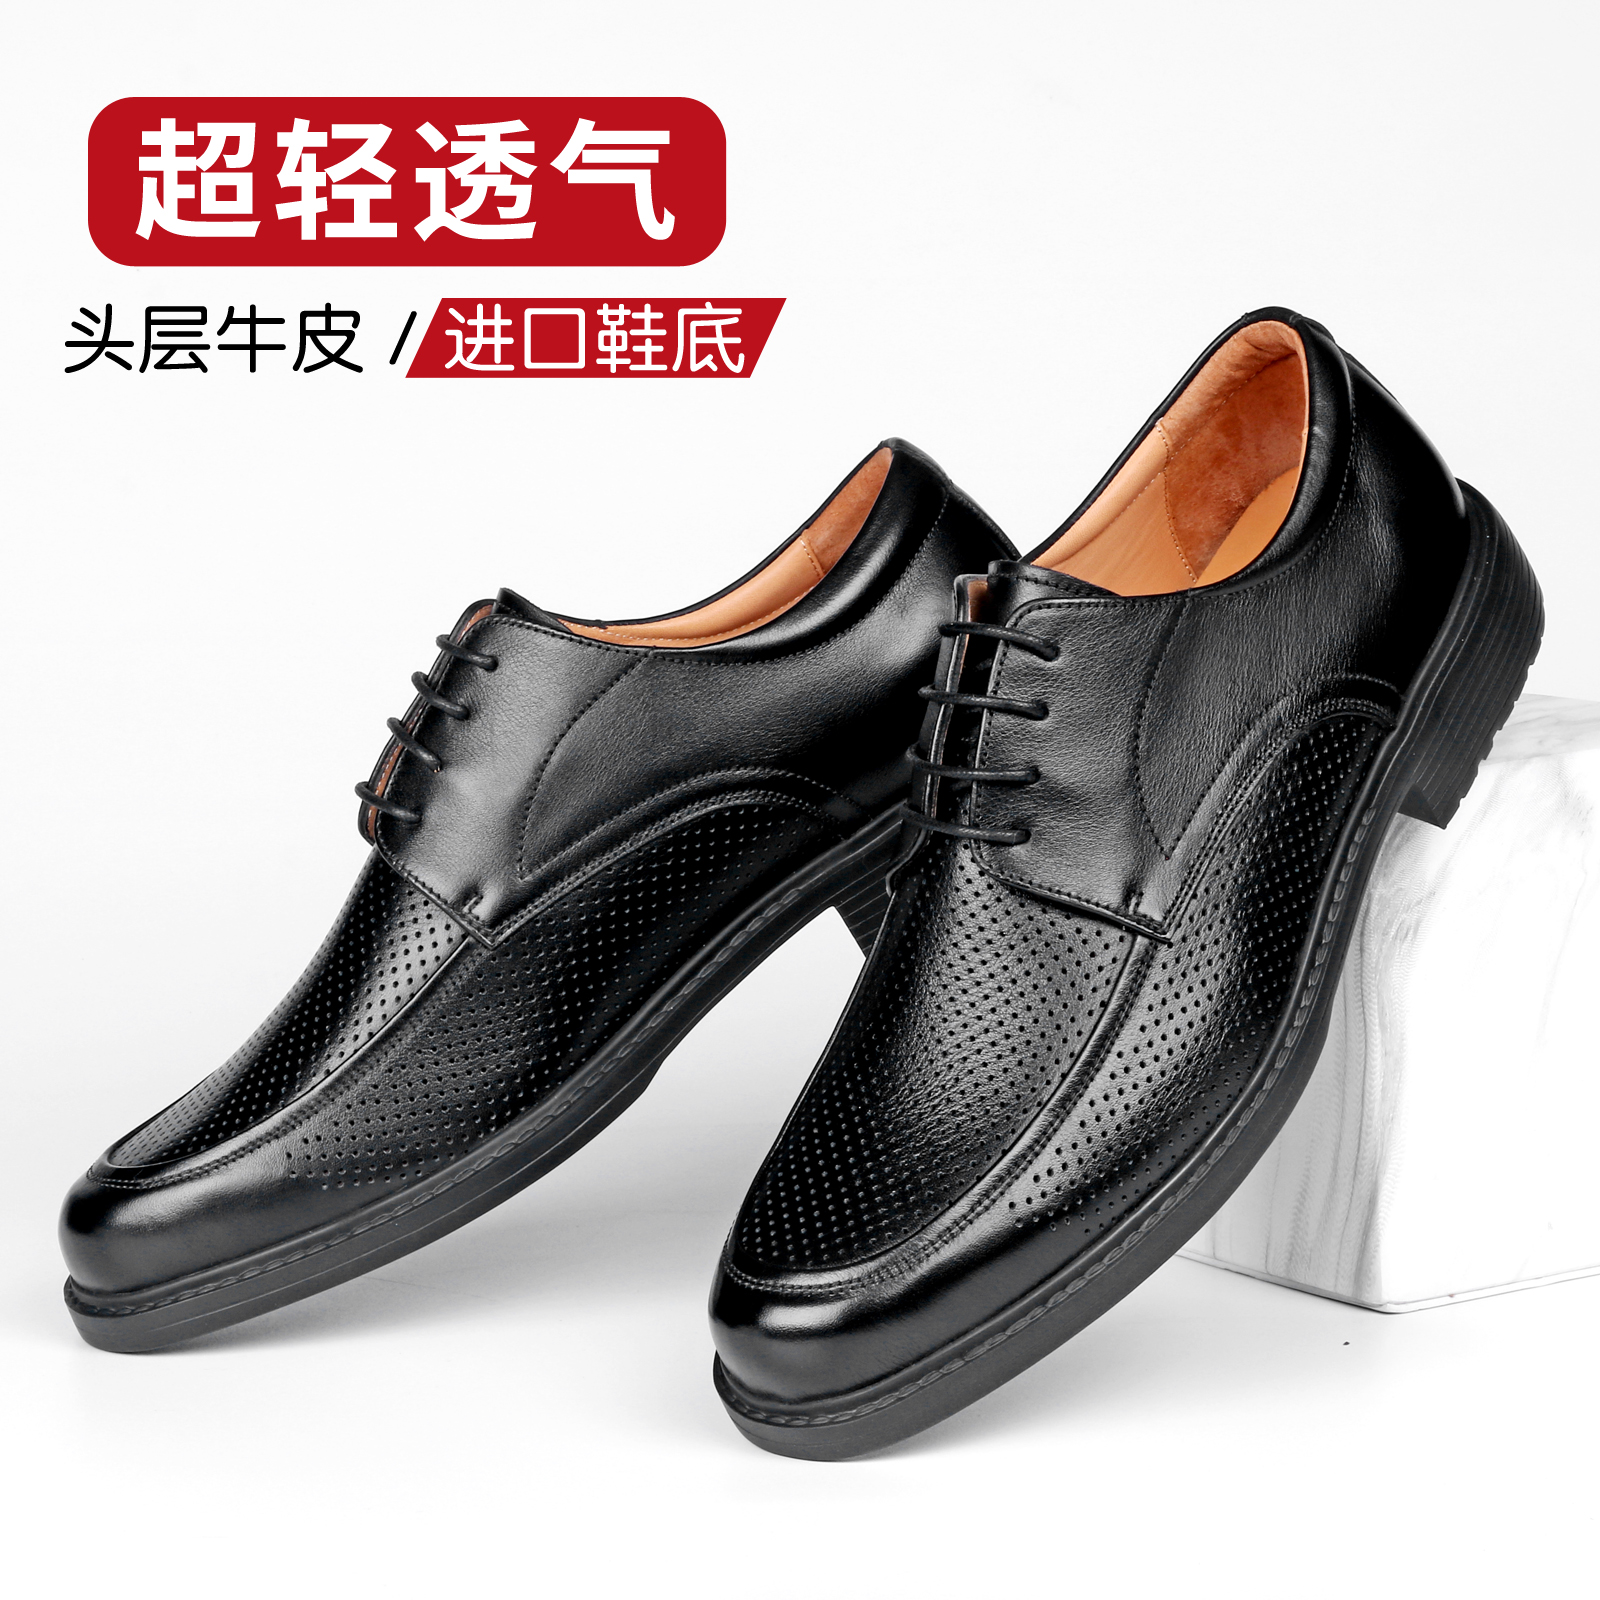 2020 summer mens punching business dress Derby shoes leather ultra light soft sole with breathable round head hole shoes